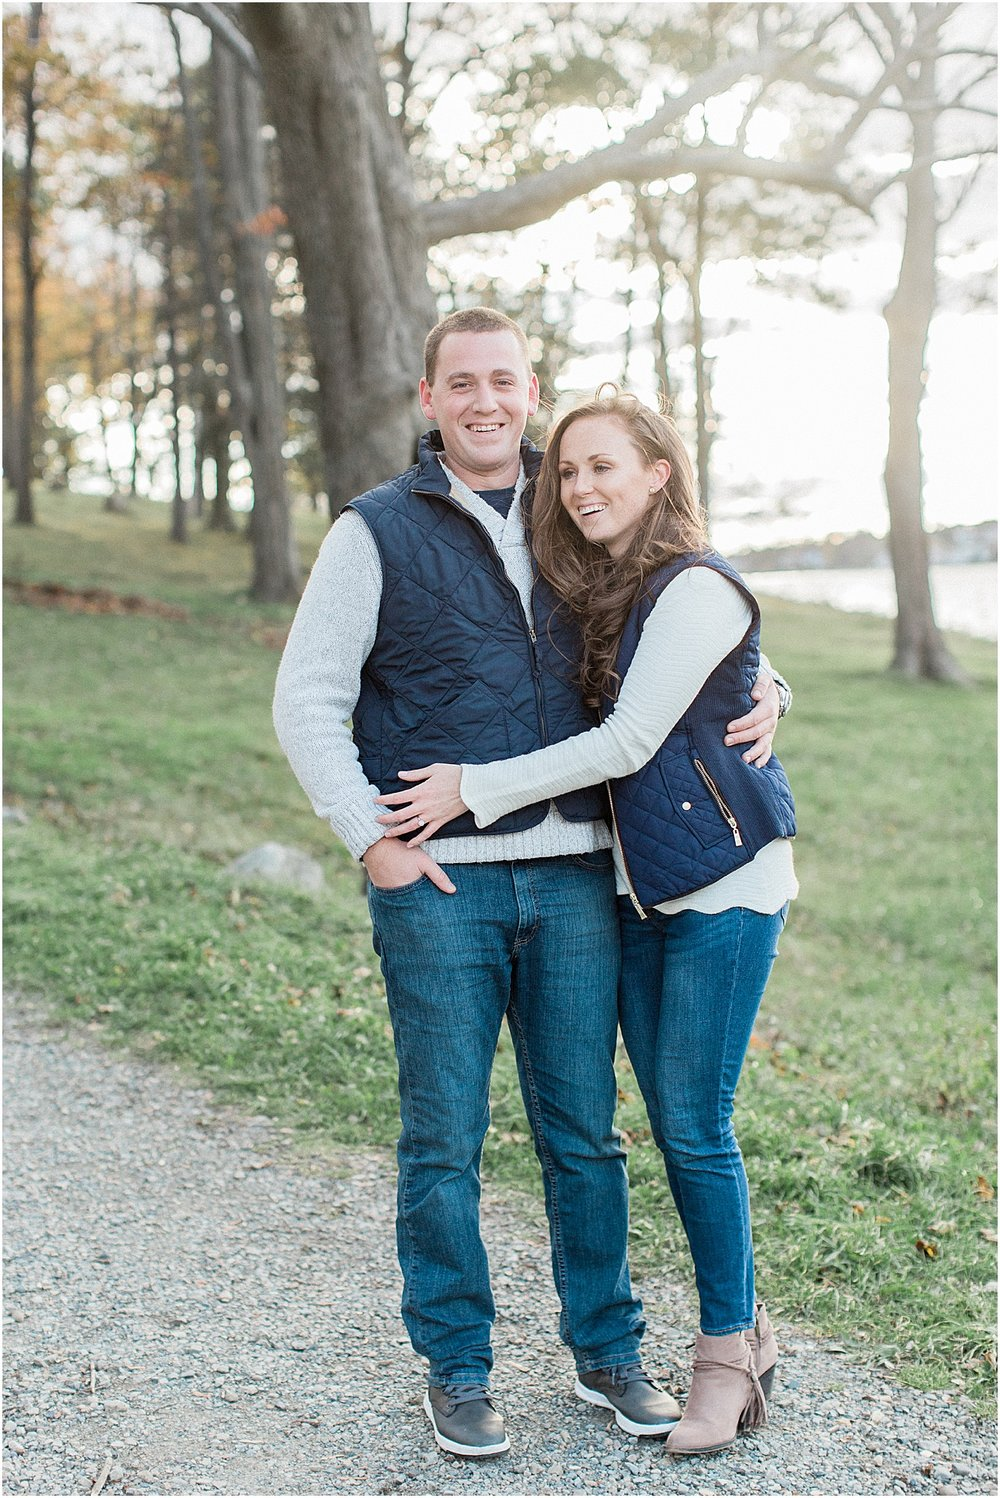 sarah_wille_engagement_worlds_end_hingham_fall_cape_cod_boston_wedding_photographer_meredith_jane_photography_photo_1736.jpg